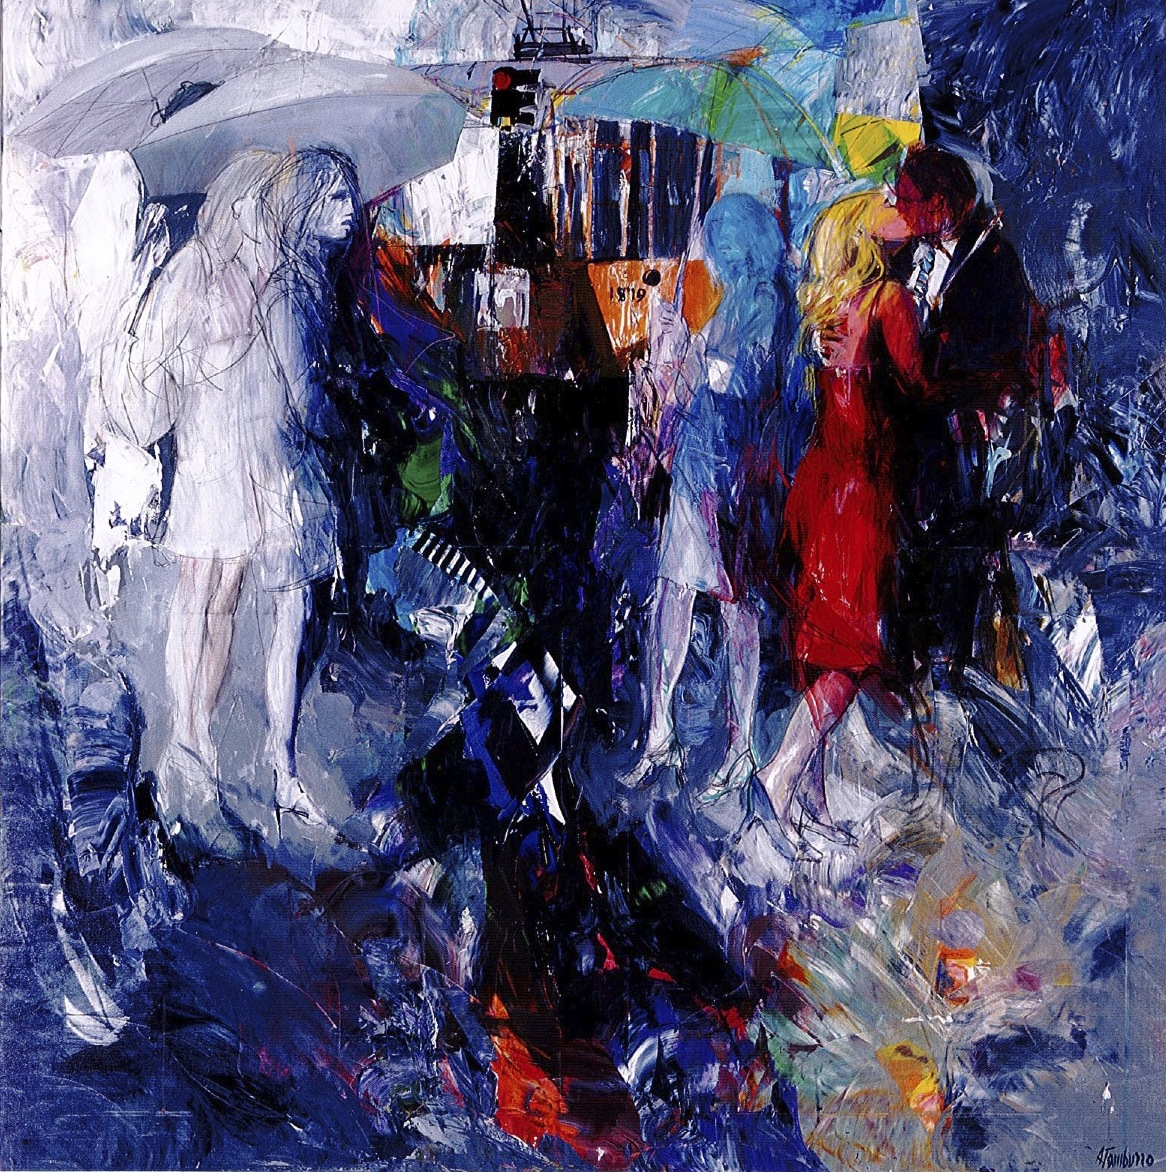 Kiss in the rain, olio e acrilico su tela, 140x140 cm